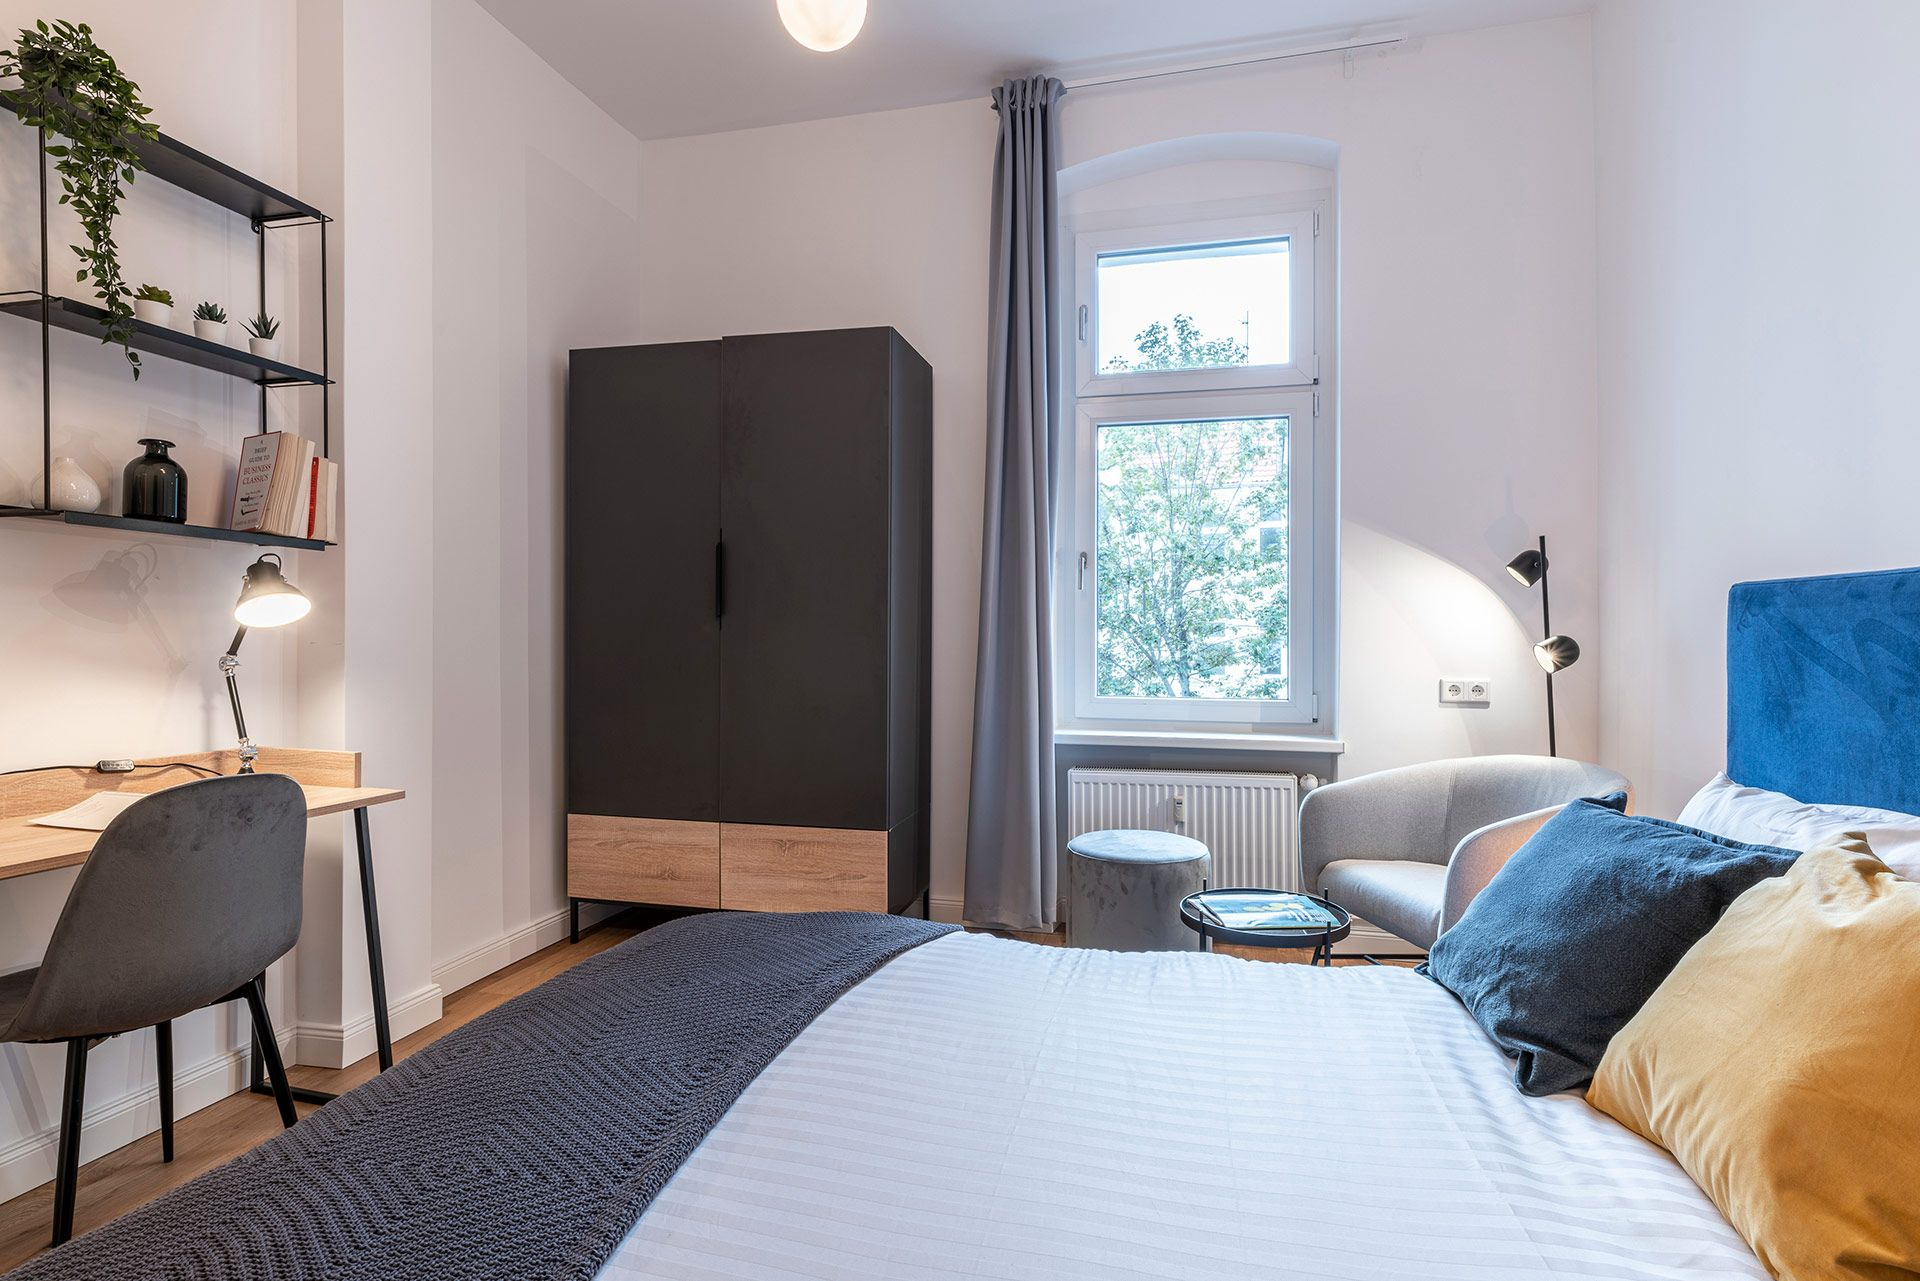 Private Room - Small apartment to rent in Berlin STRA-MARK-1111-1